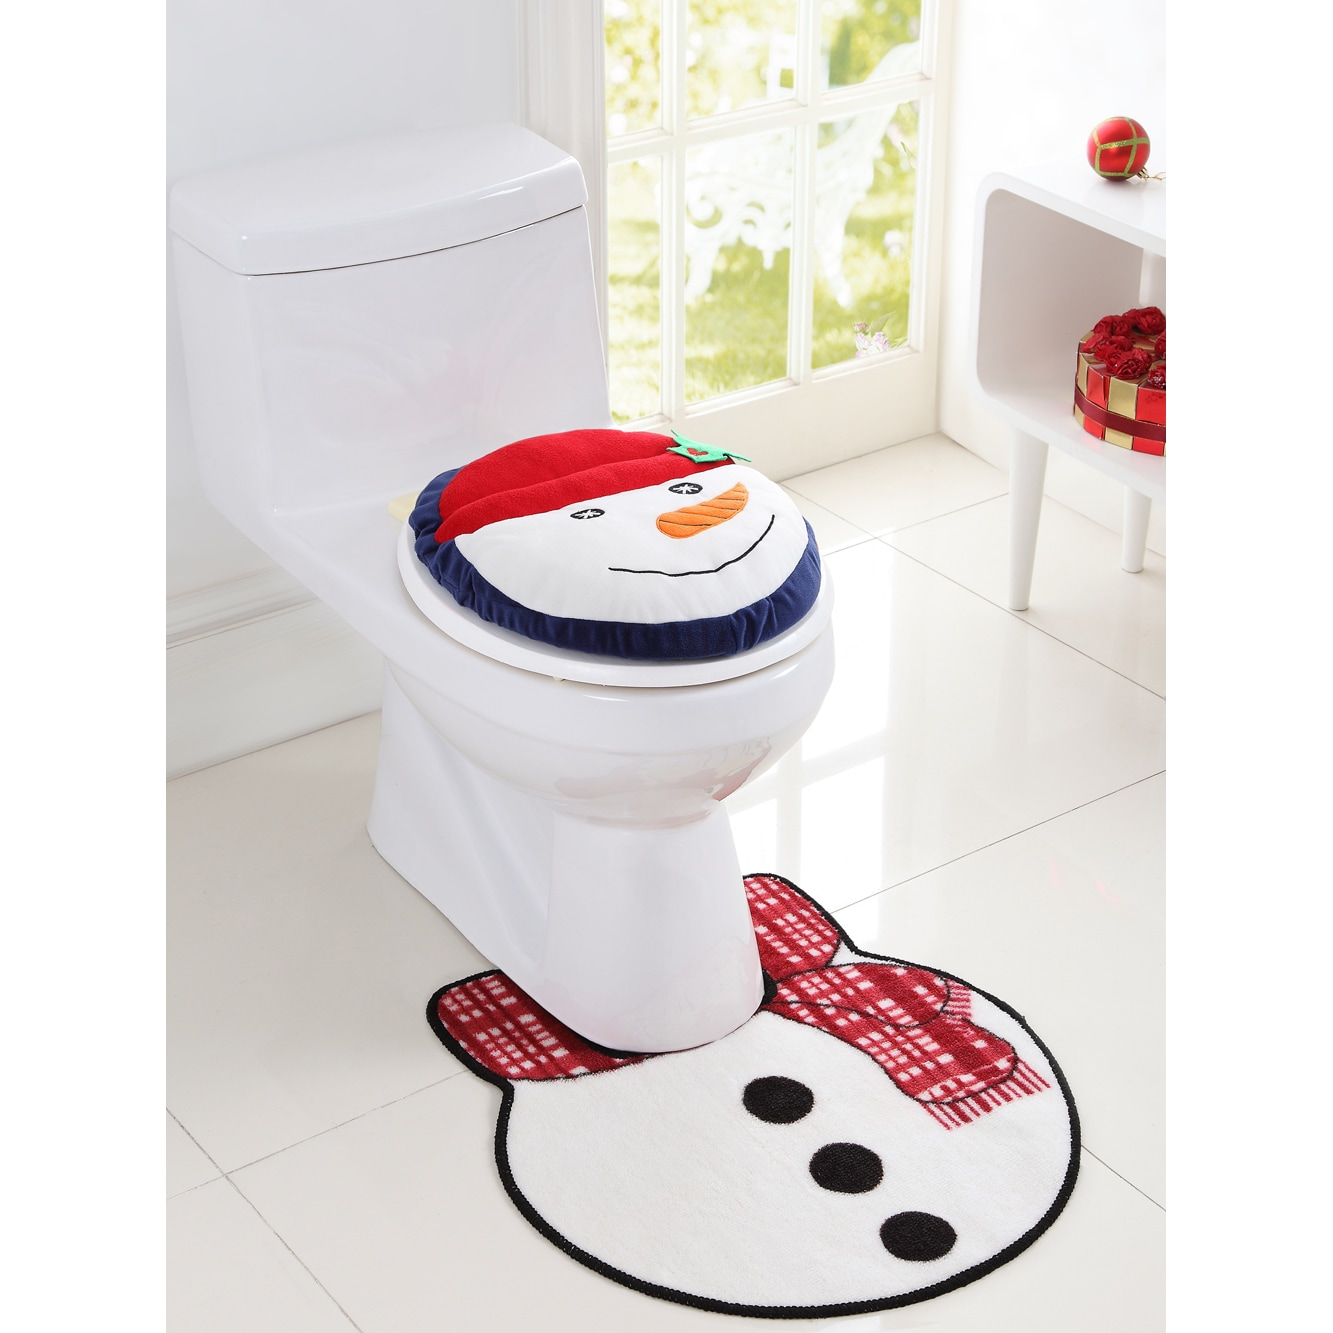 Snowman Bathroom Sets Vcny Holiday Themed Christmas Snowman 2 Piece Bath Rug Set Red White 20 X 22